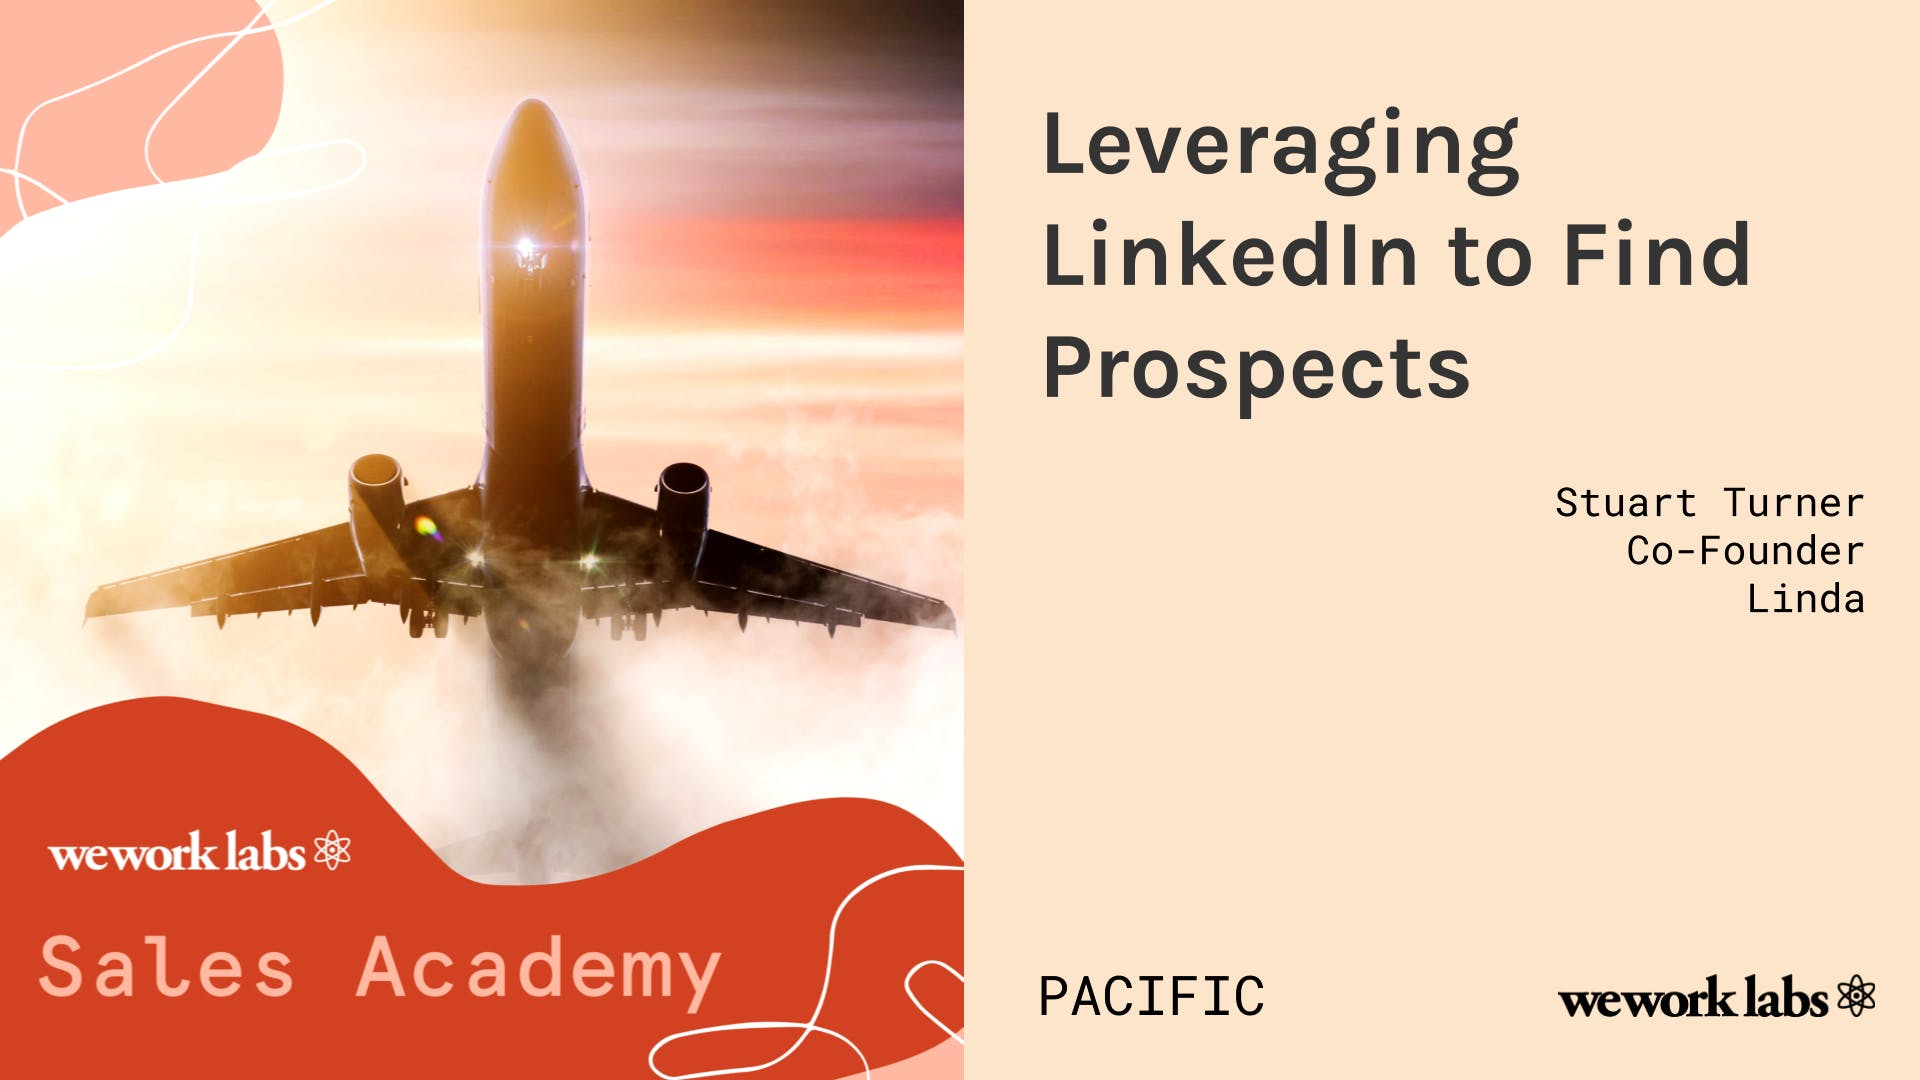 Sales Academy (Pacific): Leveraging LinkedIn to Find Prospects